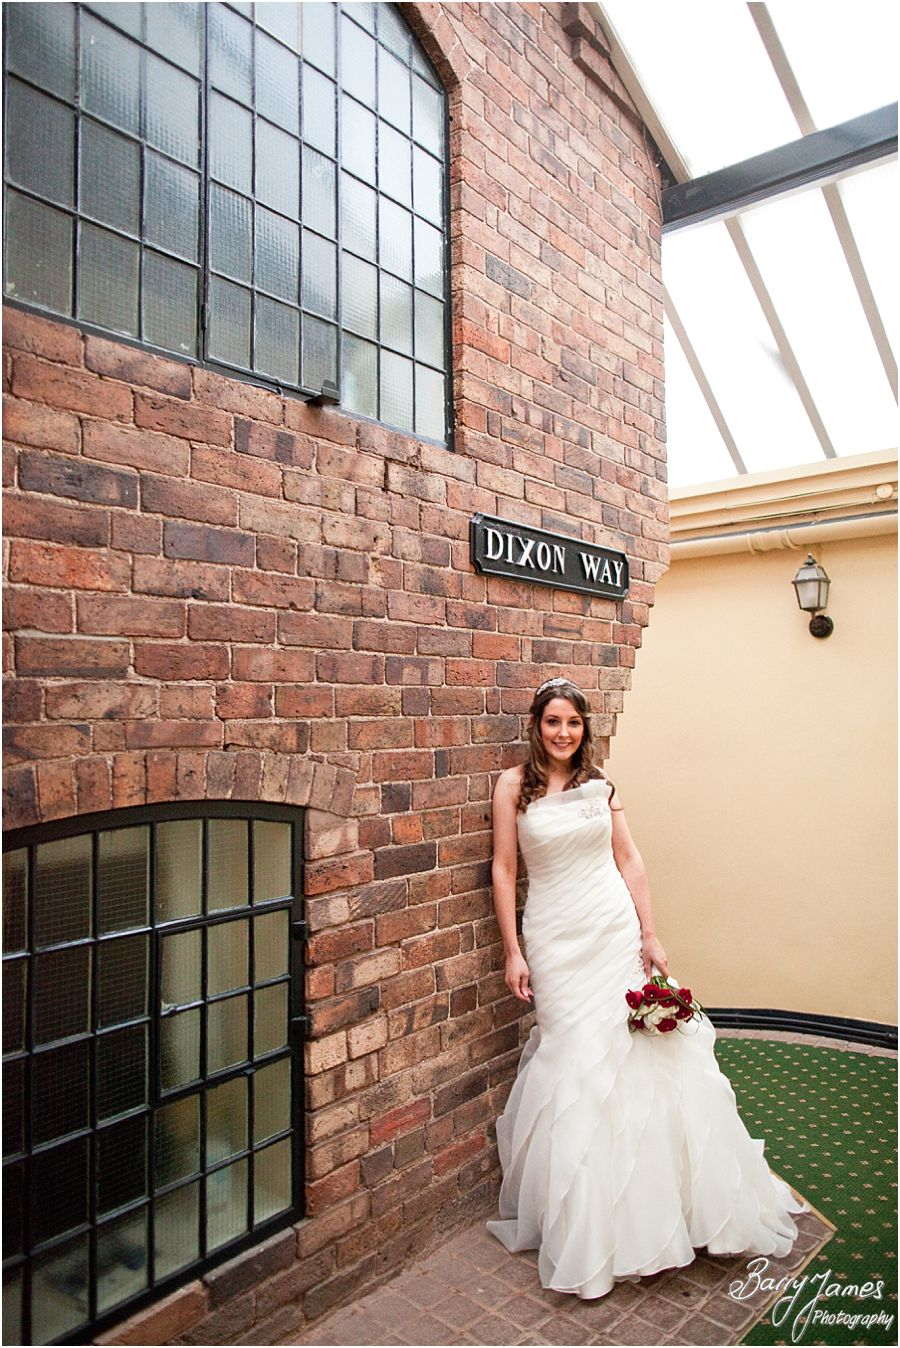 Creative relaxed portraits of Bride and Groom in gardens and in the hotel at The Valley Hotel in Ironbridge by Contemporary Wedding Photographer Barry James